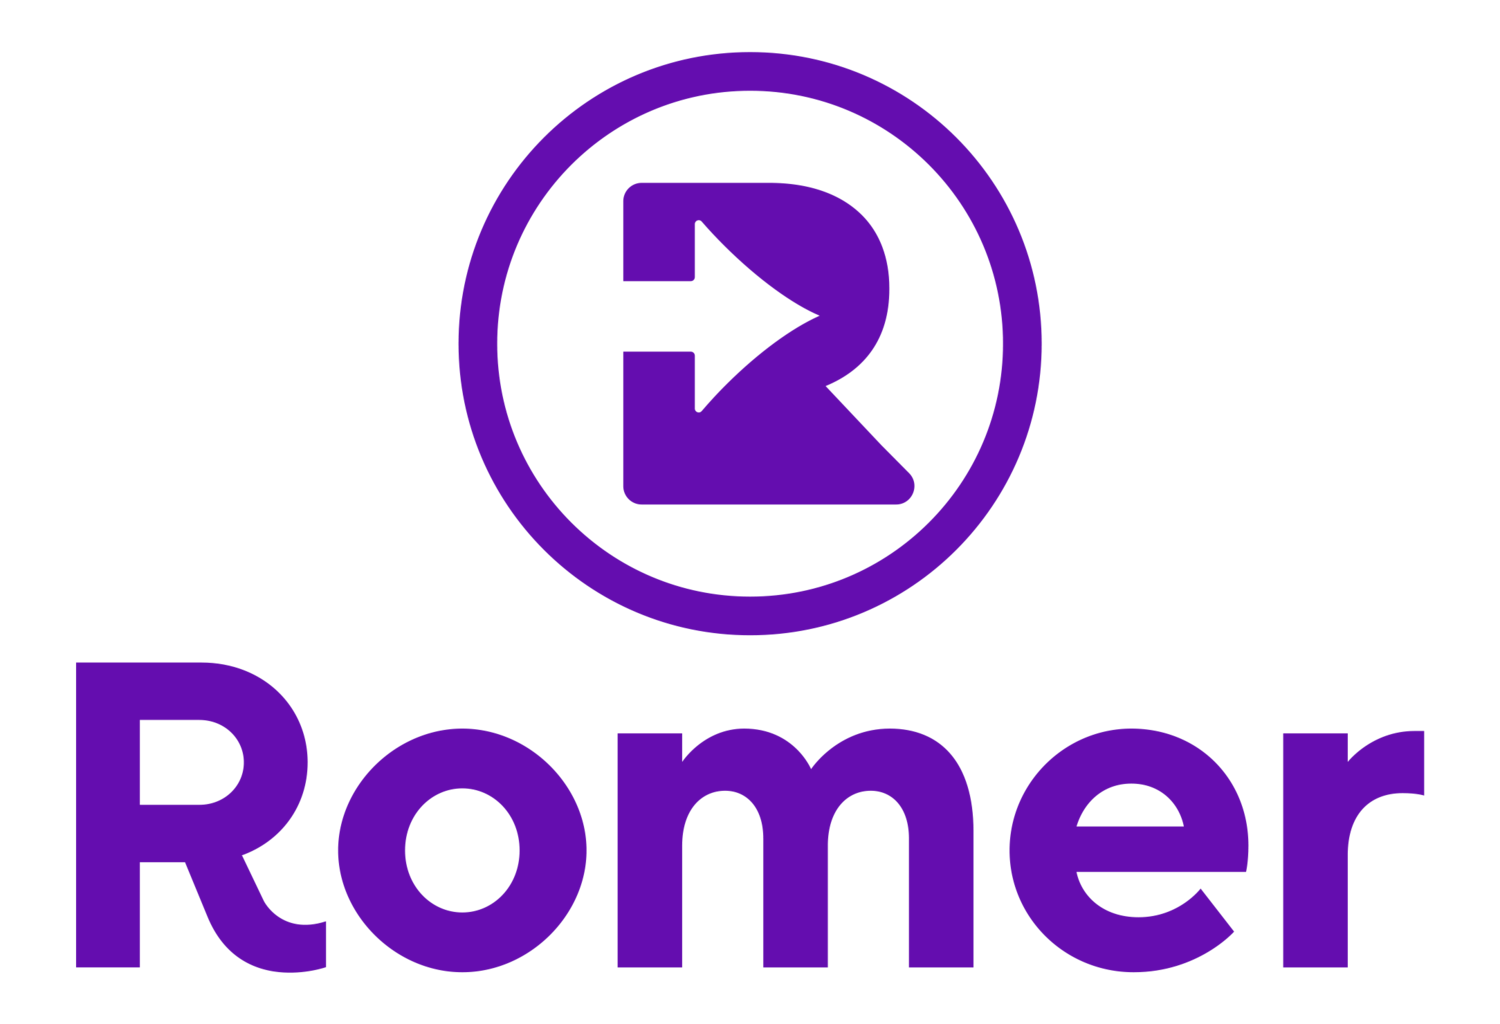 Romer App - Discover Nearby Hidden Gems.